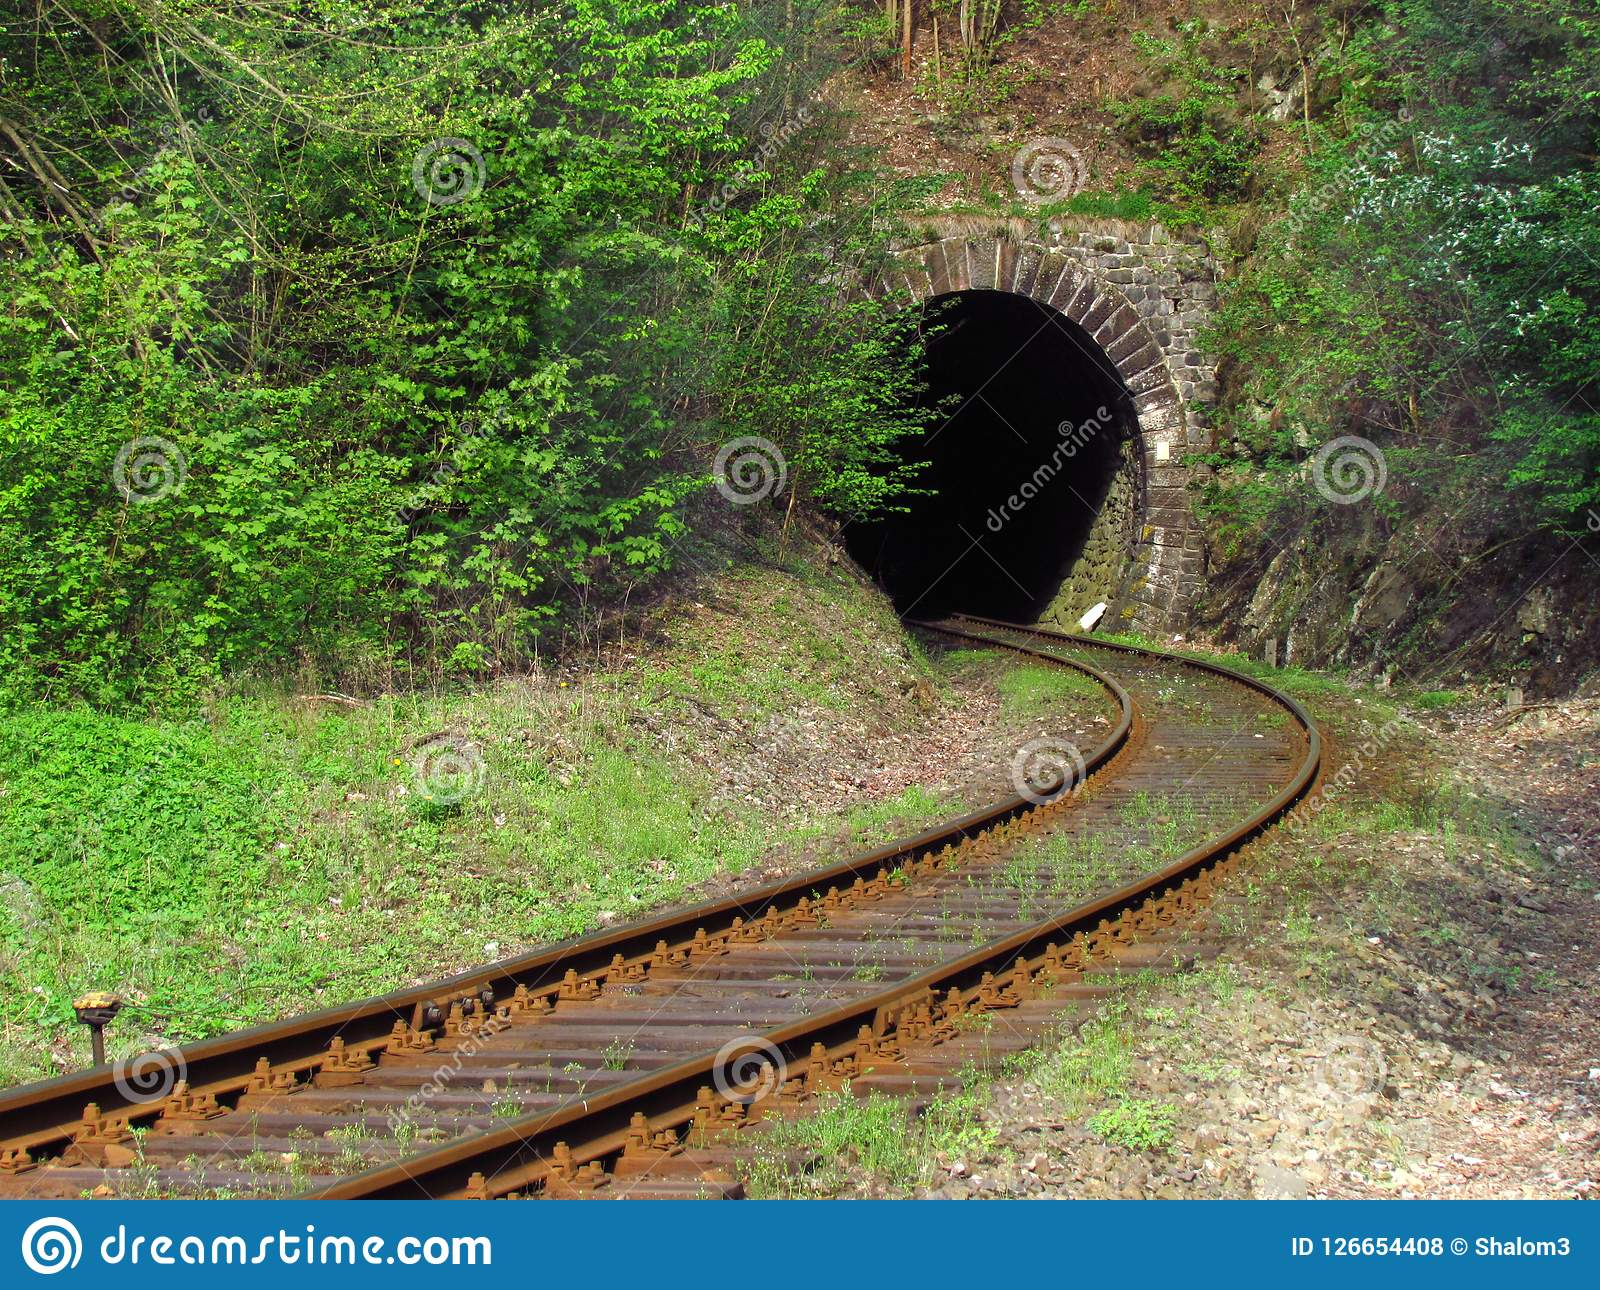 Old Railway Tracks In Nature Leading Into The Tunnel Traveling By Train Stock Photo Image Of Romantic Shrub 126654408 Nature railway rails stone arch trees